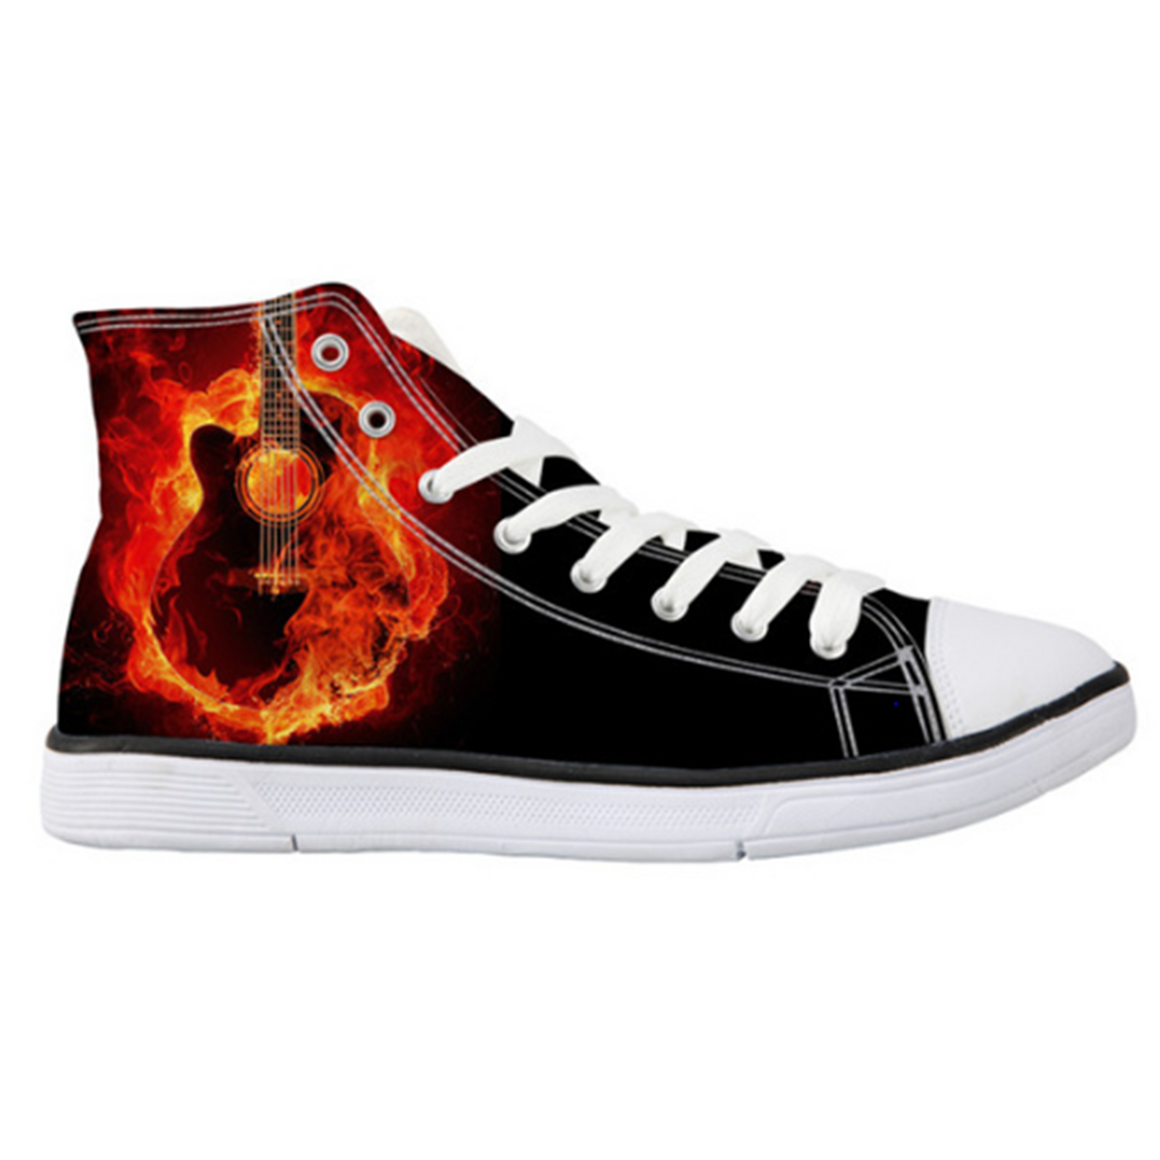 Burning Guitar High-Top Unisex Shoes